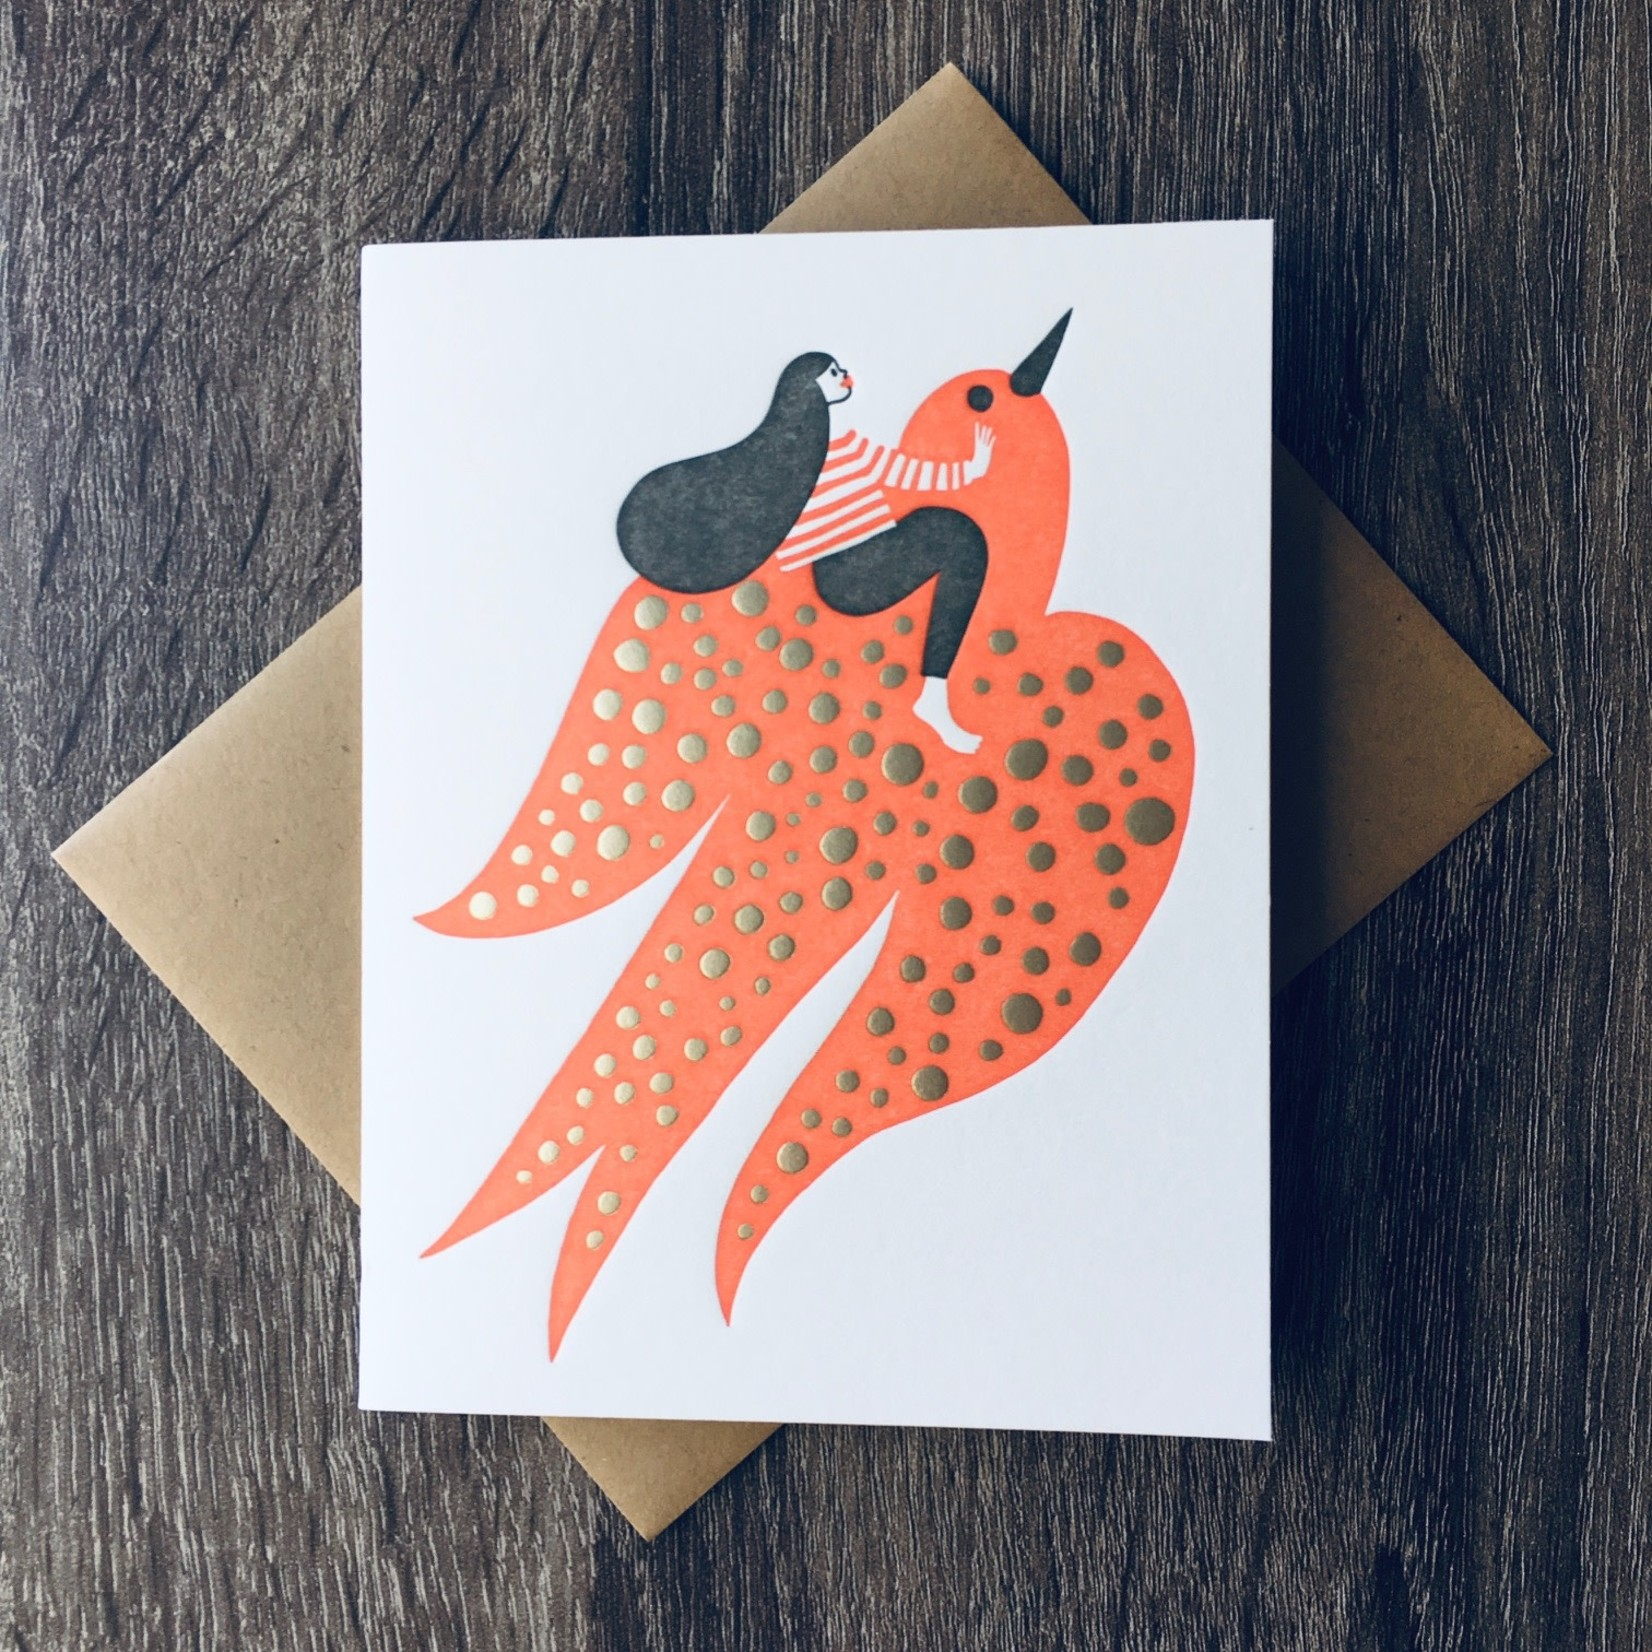 Bison Bookbinding & Letterpress Flying High (Girl On Swallow) Greeting Card